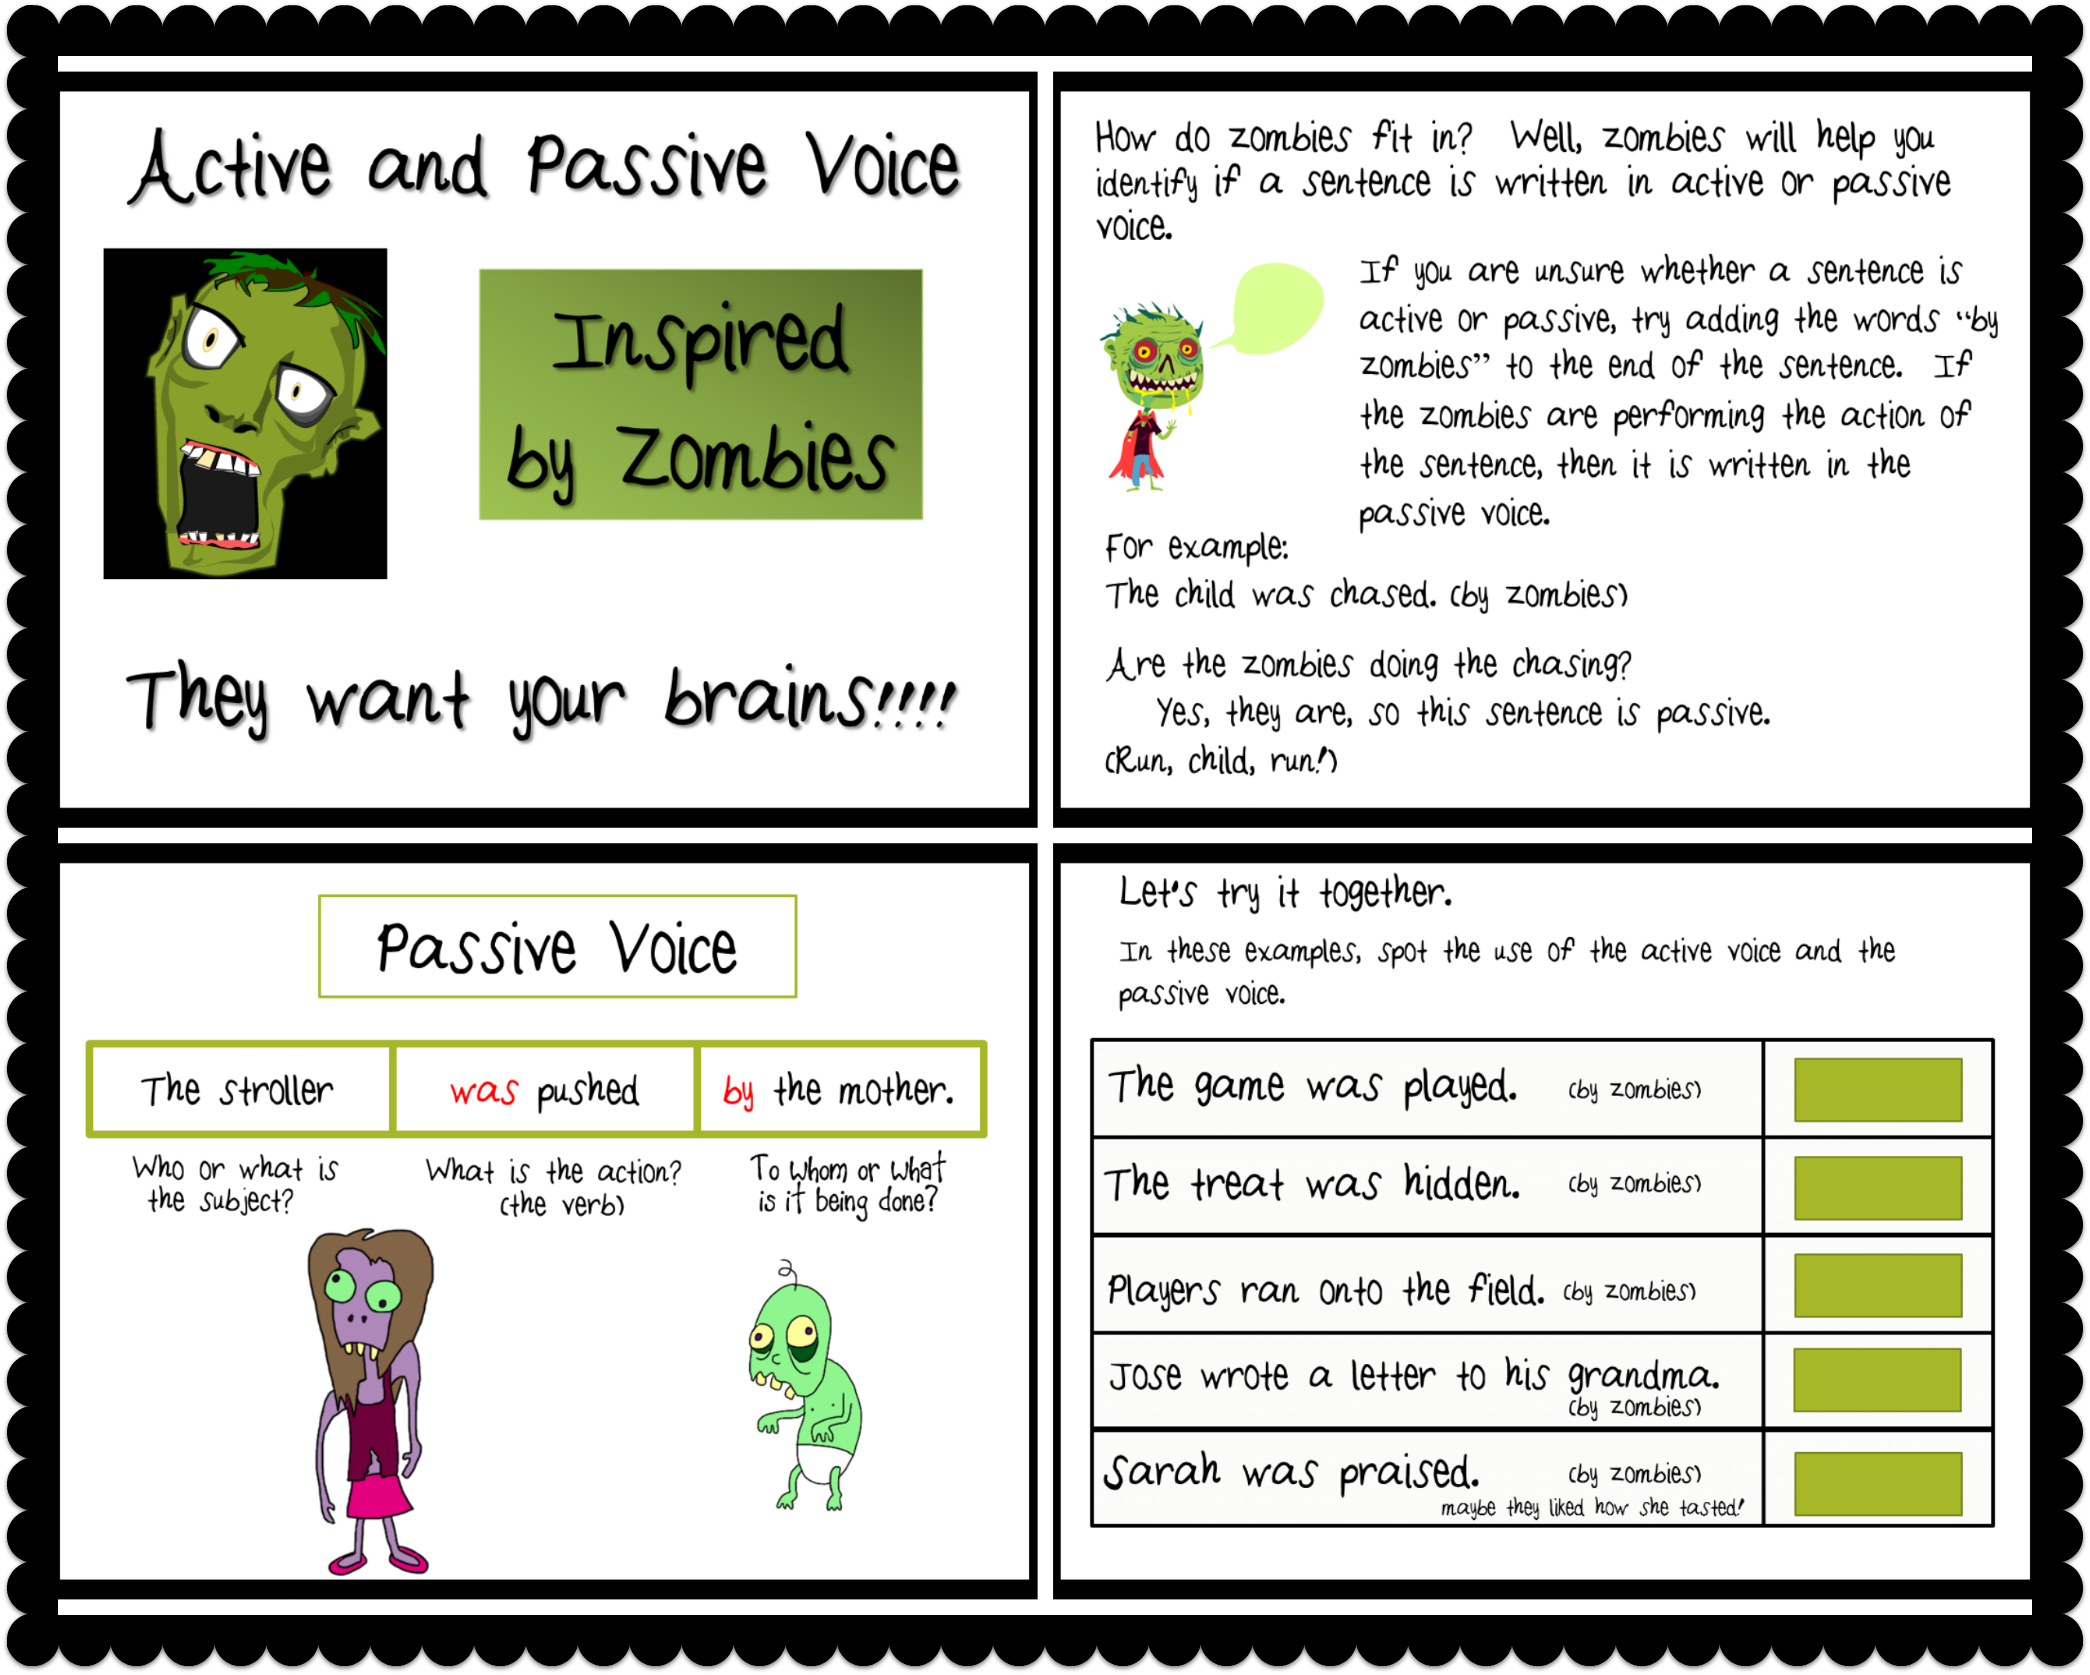 Active And Passive Voice With Zombies Powerpoint